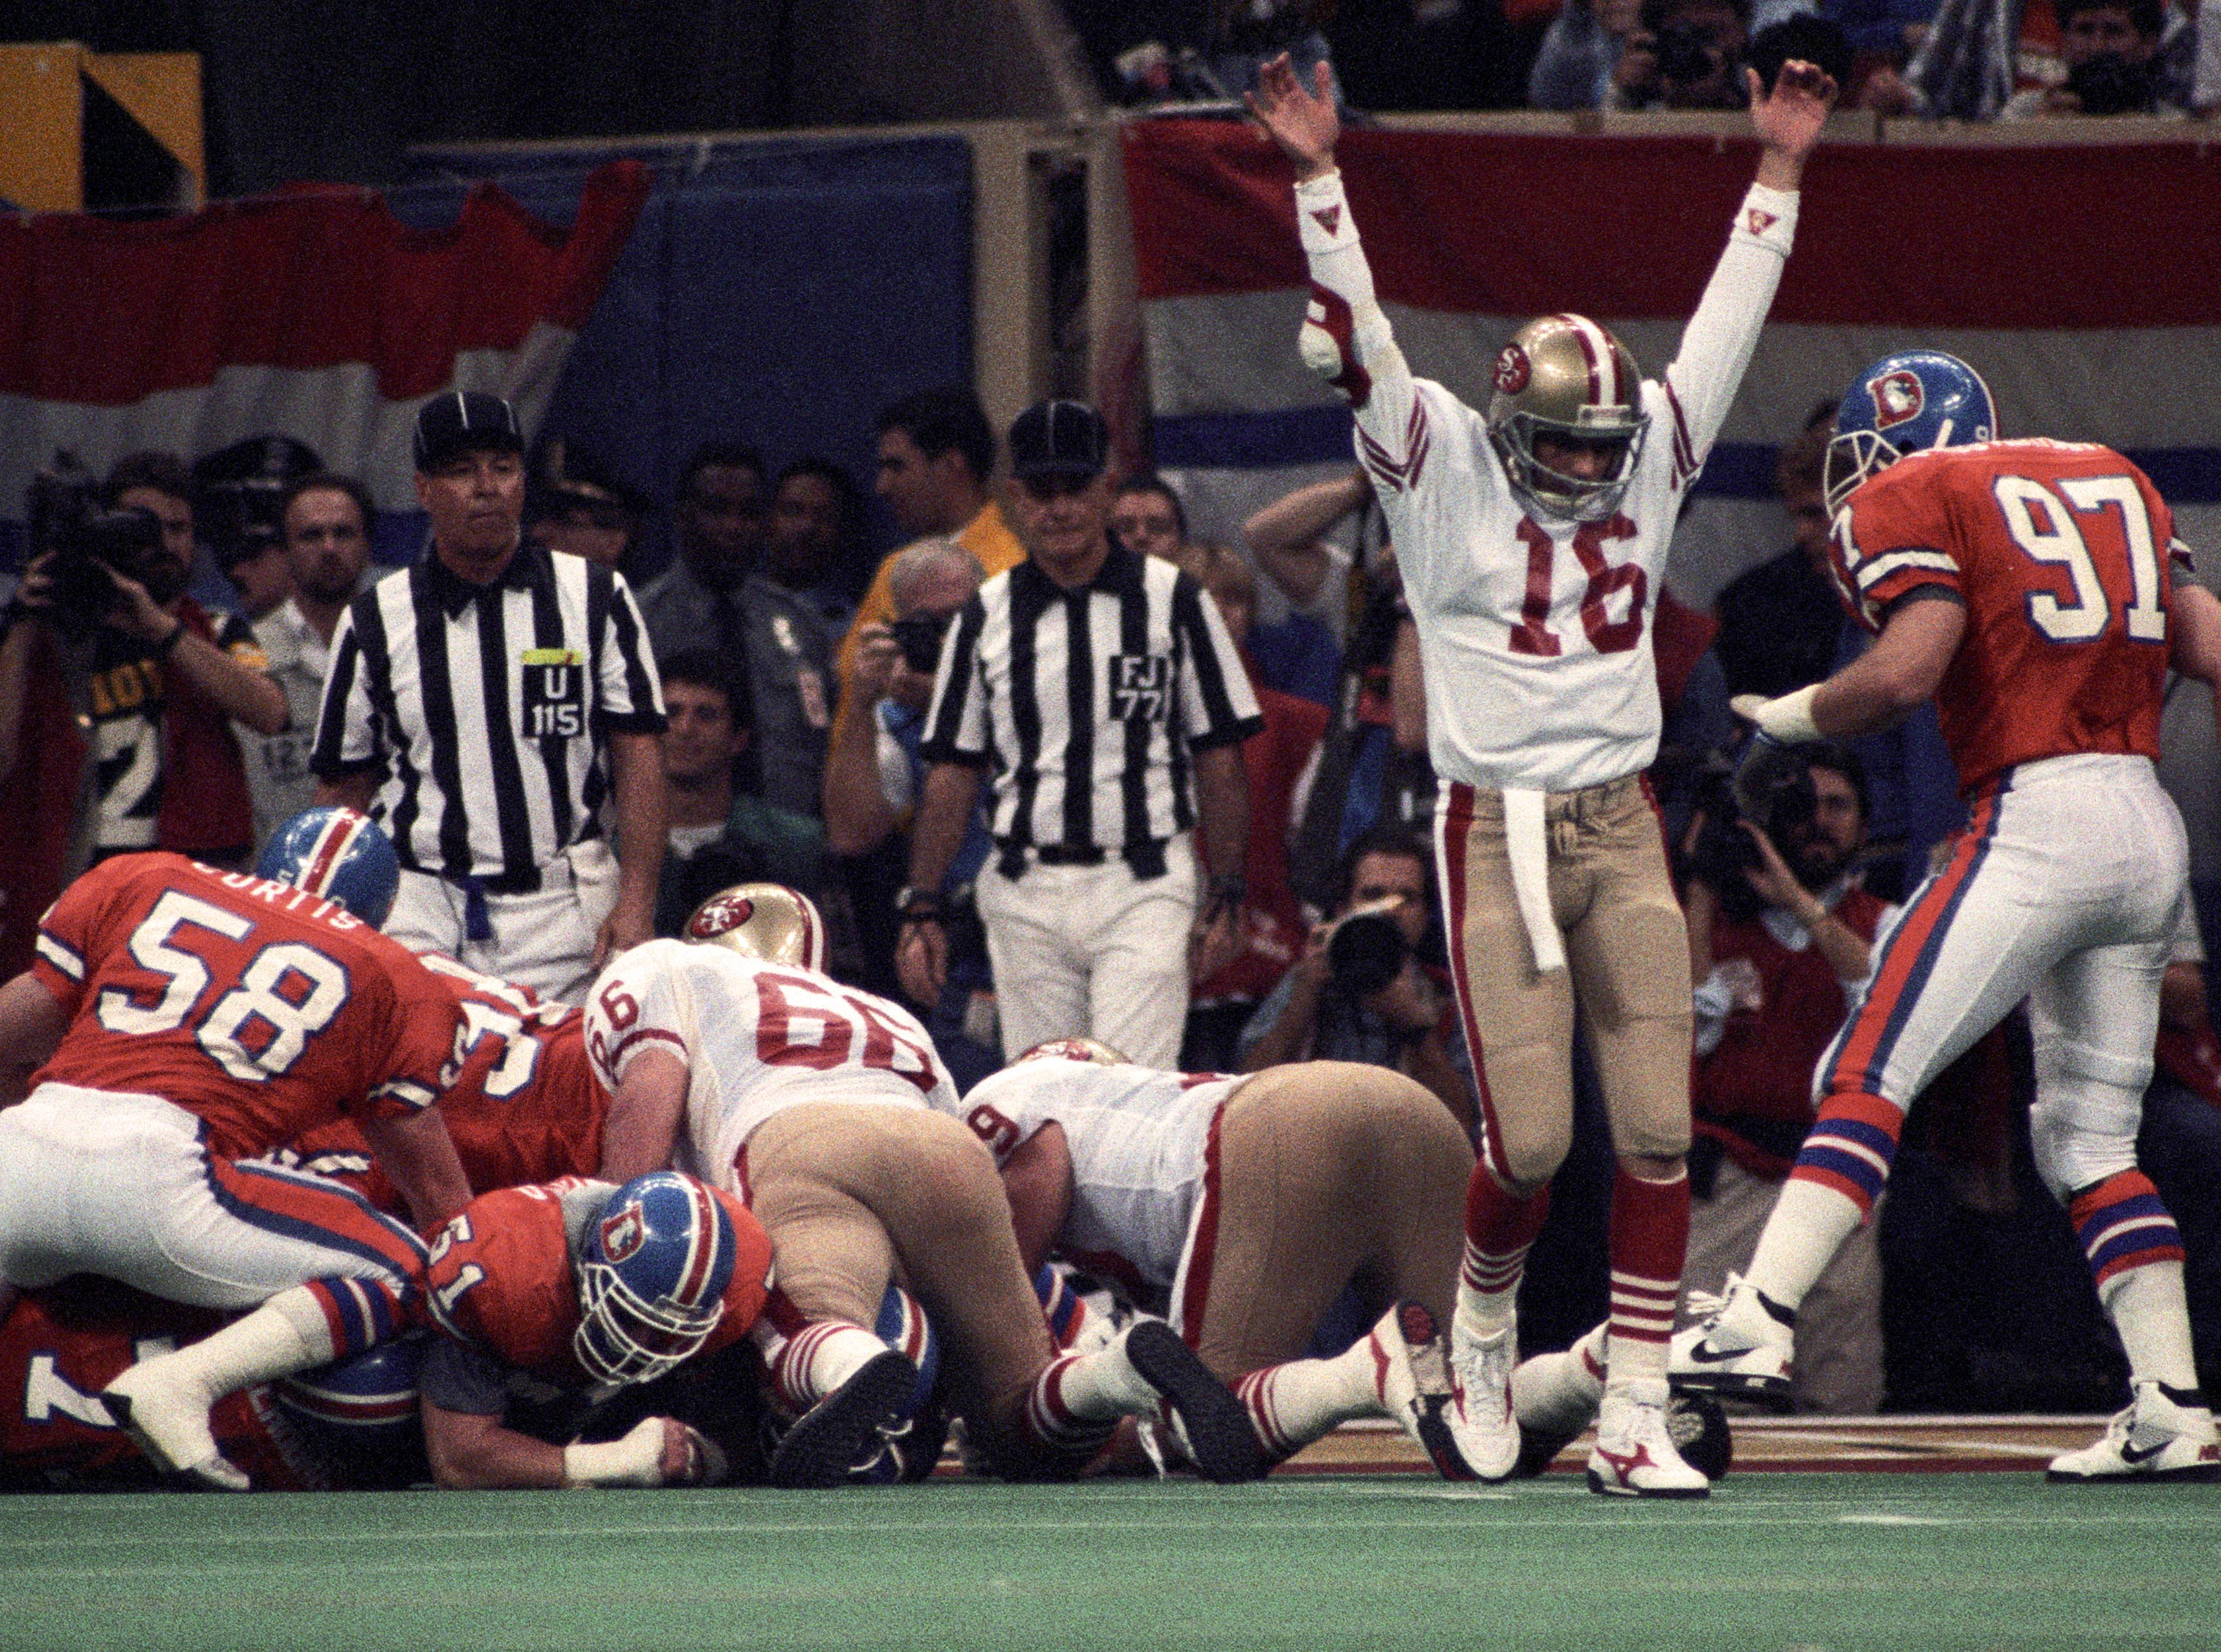 The second NFL dynasty was the San Francisco 49ers. They won five Super Bowl championships between 1981 and 1995 with Hall of Famers Joe Montana, Jerry Rice, Ronnie Lott, Steve Young and head coach Bill Walsh. The 1989 team is considered one of the most dominant teams in NFL history, with the most points scored and widest margin of victory in a Super Bowl (55-10) and winning three playoff games by a combined 100 points. (pictured: Jan 28, 1990; New Orleans, LA, USA; San Francisco 49ers quarterback Joe Montana (16) reacts on the field against the Denver Broncos during Super Bowl XXIV at the Superdome.)